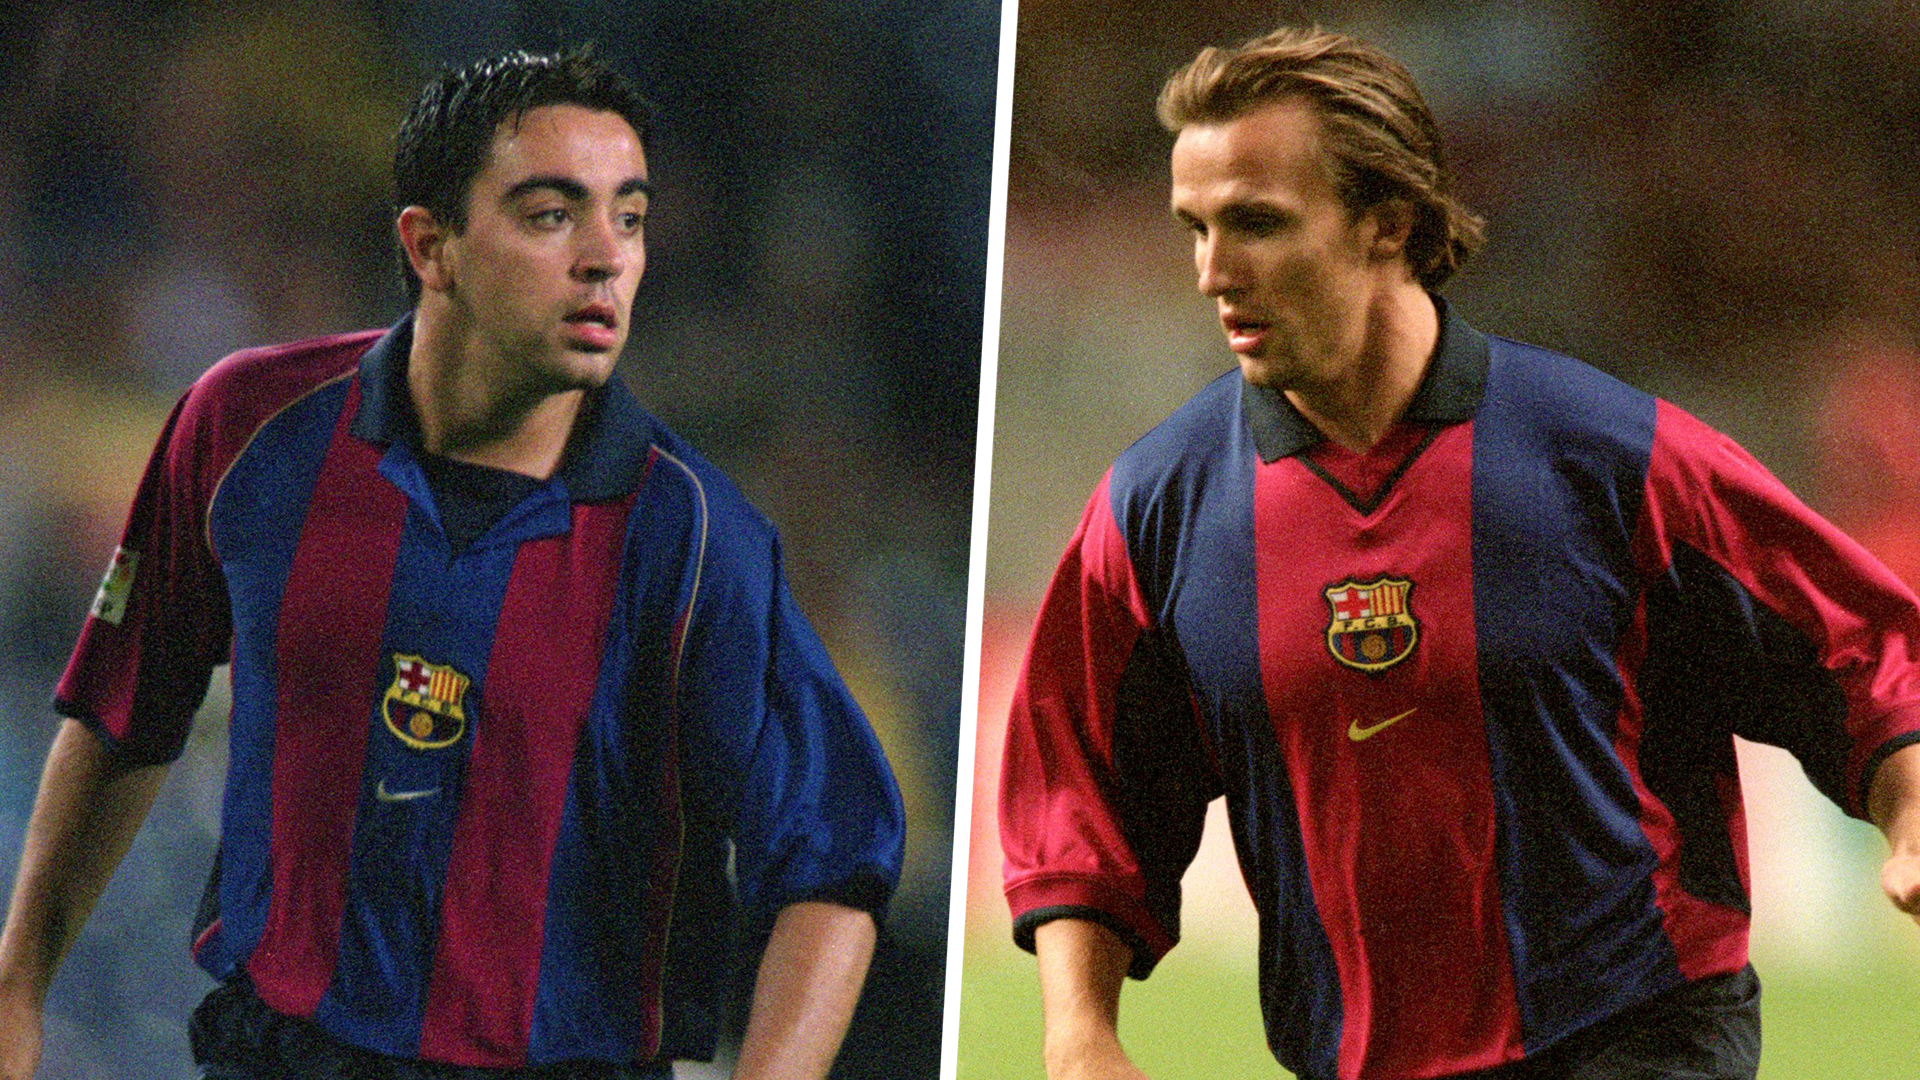 Former FC Barcelona great Xavi Hernandez has ruled out coaching the club in the near period. He cited institutional problems as a reason and added he would remain in his role with Qatar's Al Sadd. Xavi rejected the offer to coach his former club back in January when they sacked Ernesto Valverde. He alluded to […]